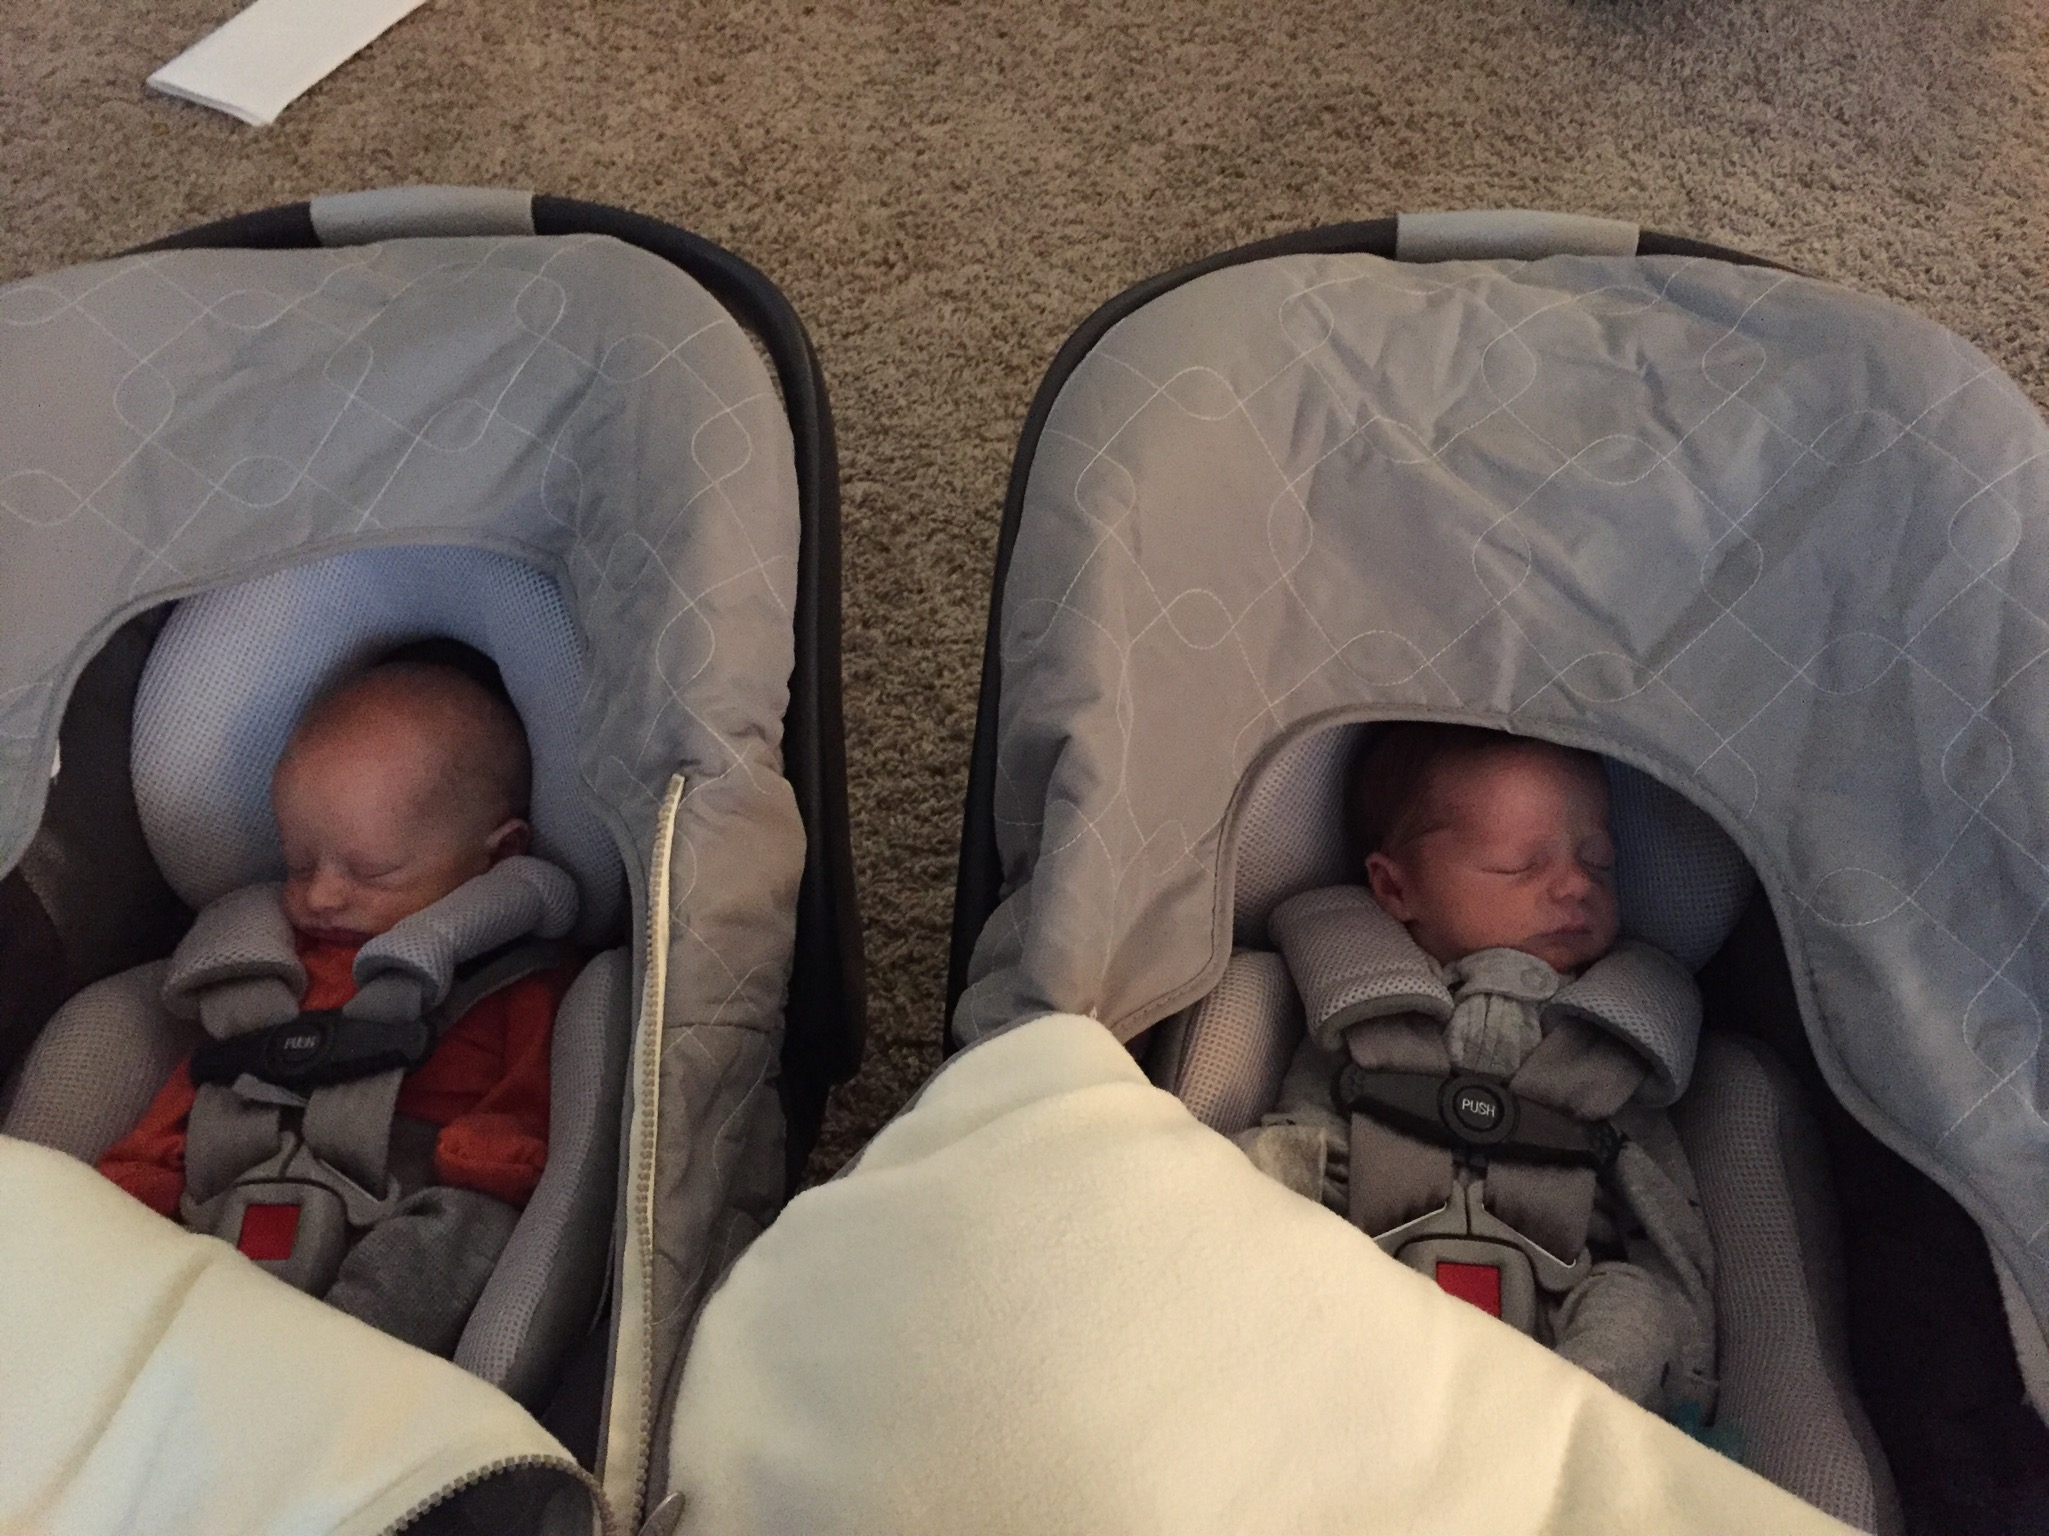 After the pediatrician, napping in their carseats - 1 week old